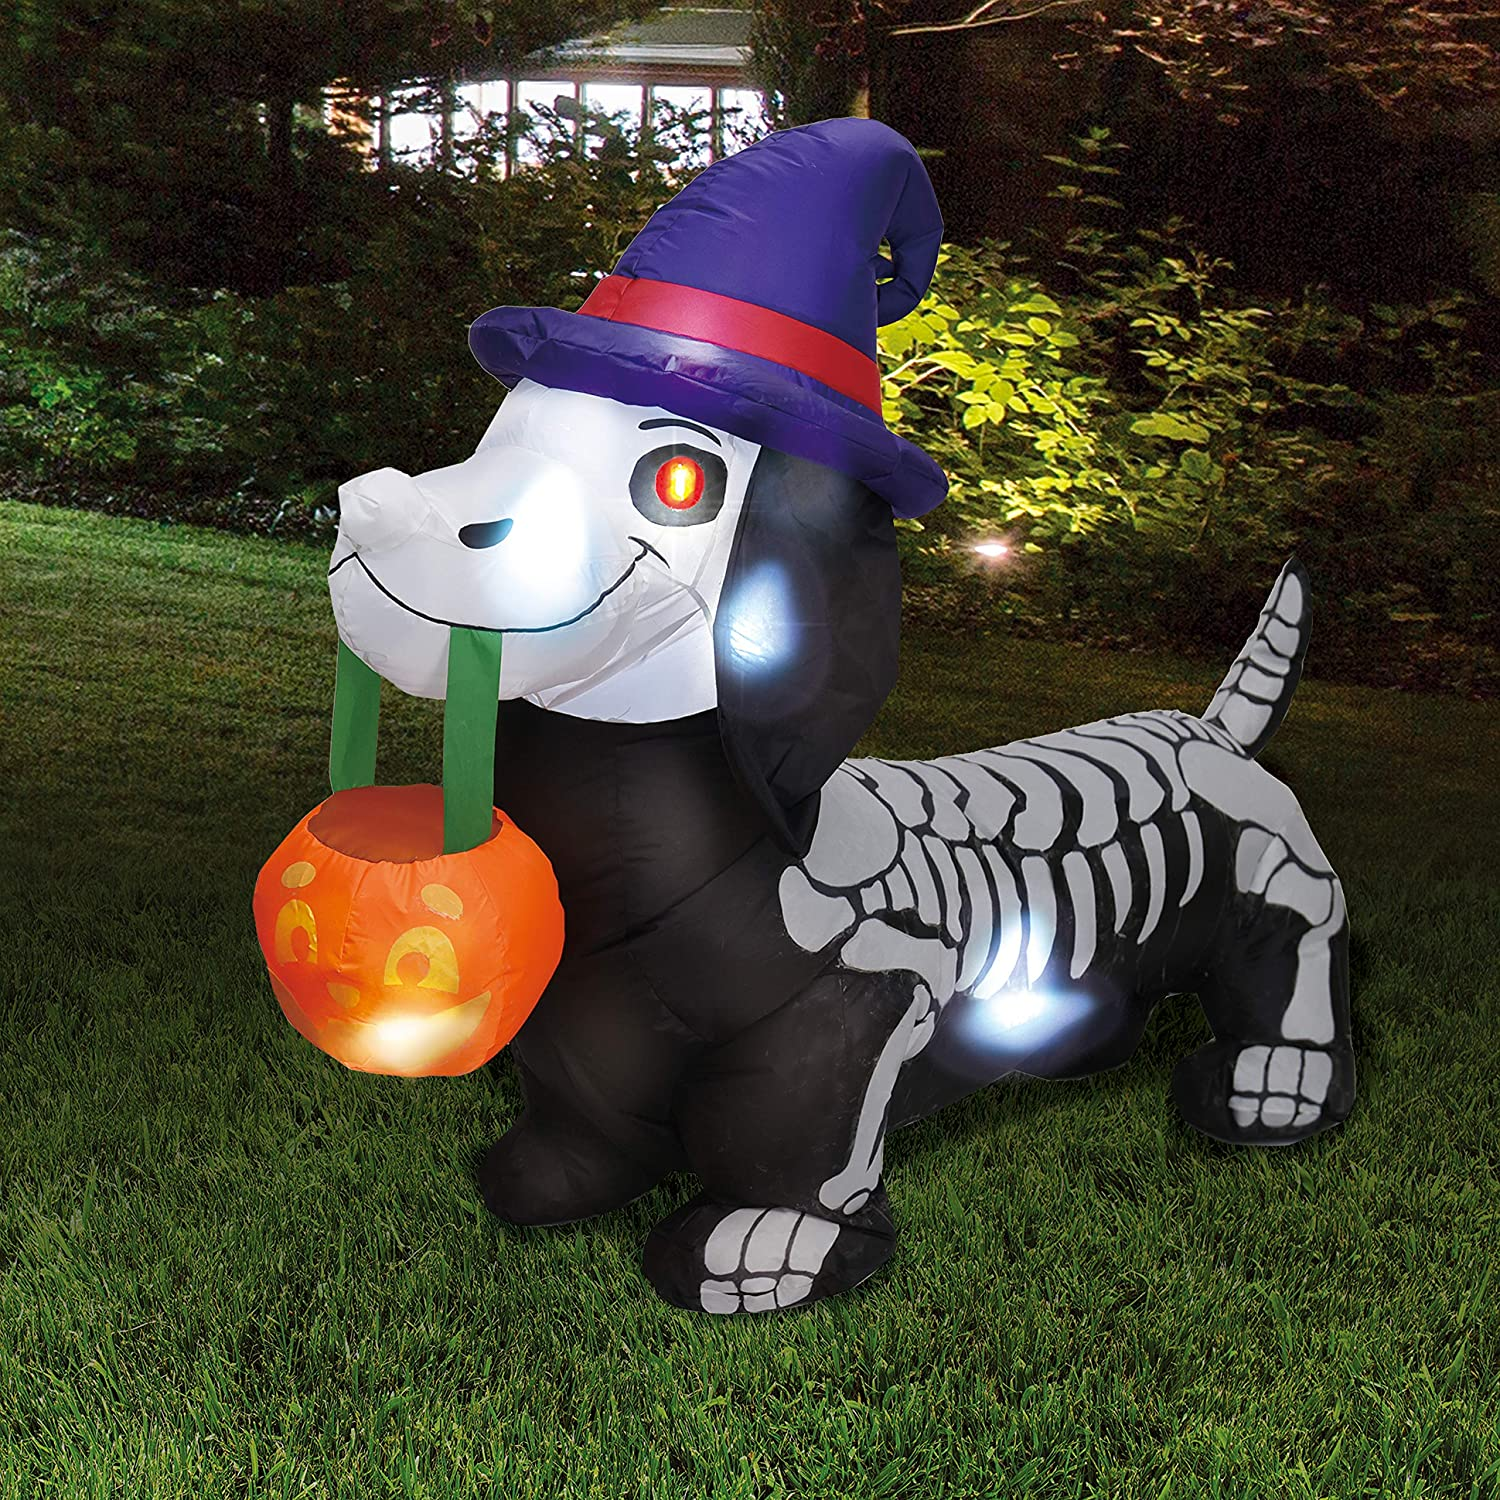 Joiedomi 5 FT Long Halloween Inflatable Skeleton Wiener Dog Inflatable Yard Decoration with Build-in LEDs Blow Up Inflatables for Halloween Party Indoor, Outdoor, Yard, Garden, Lawn Decorations